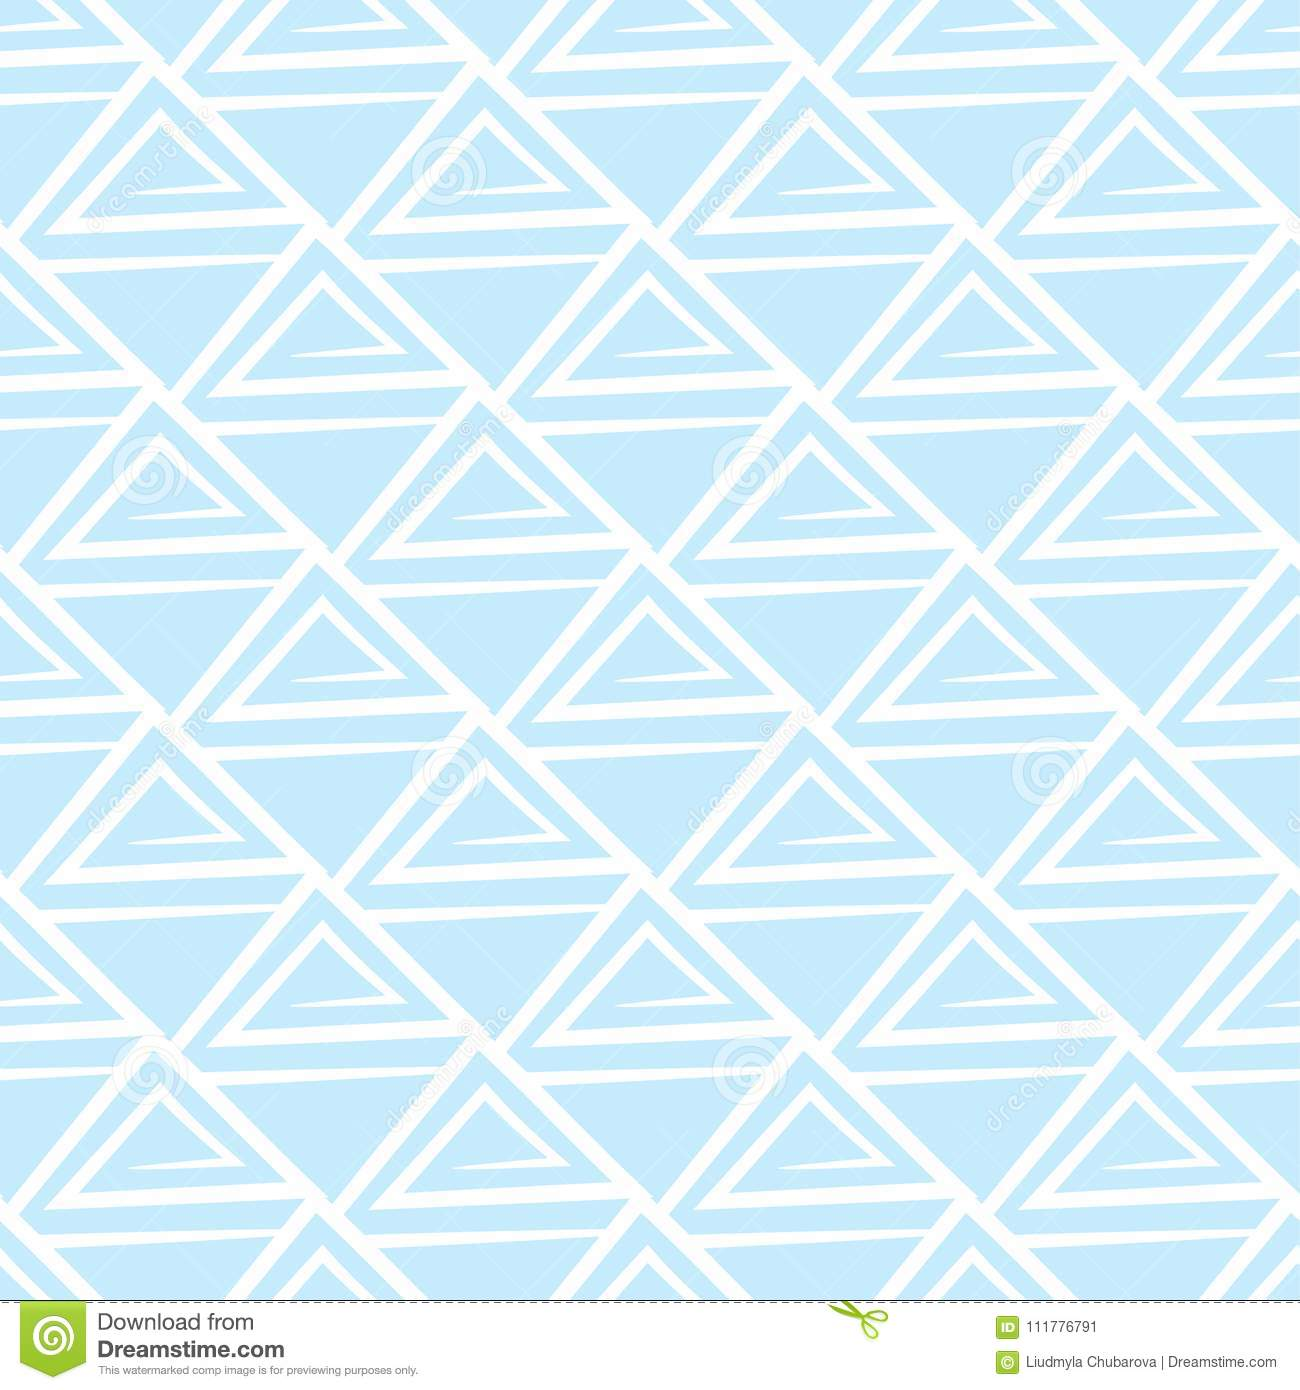 Abstract seamless pattern. Light blue and white background for textile and fabrics